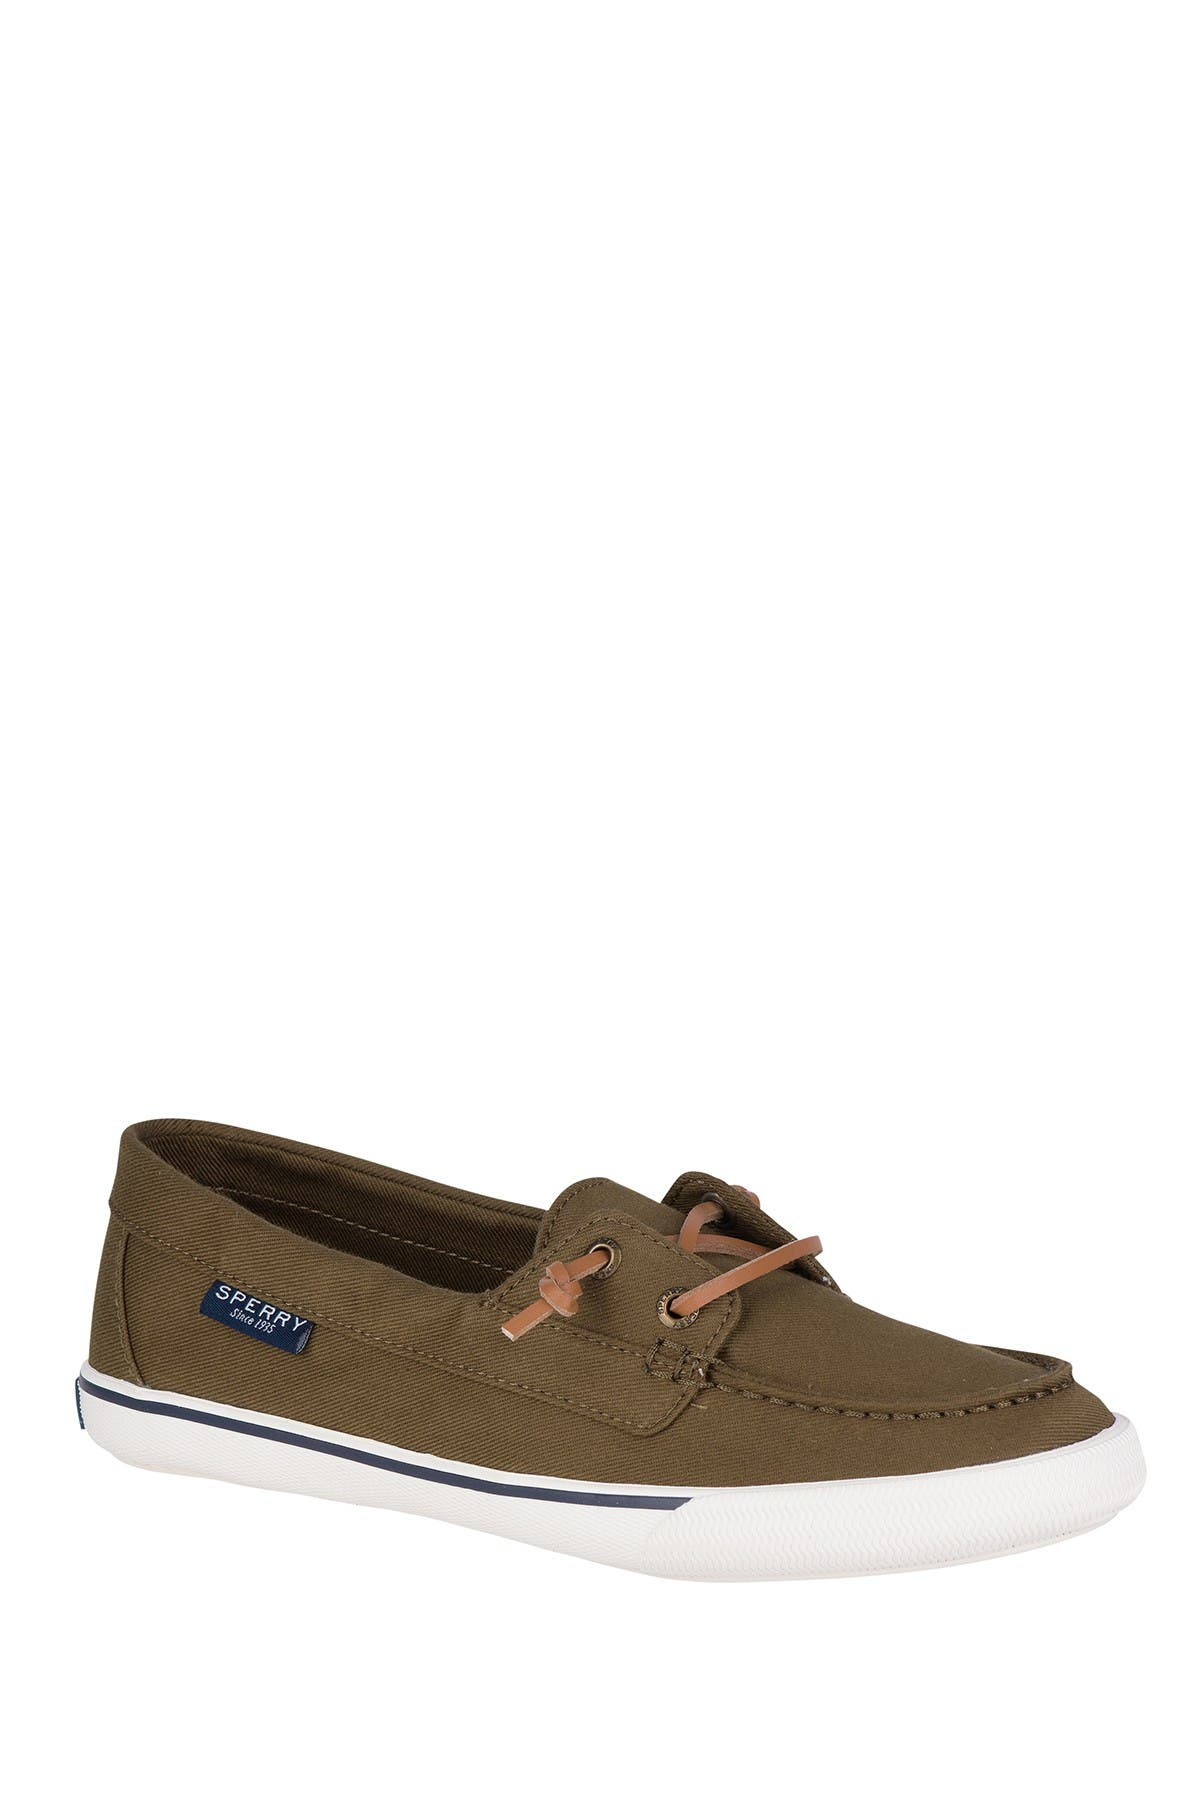 Image of Sperry Lounge Away Canvas Sneaker